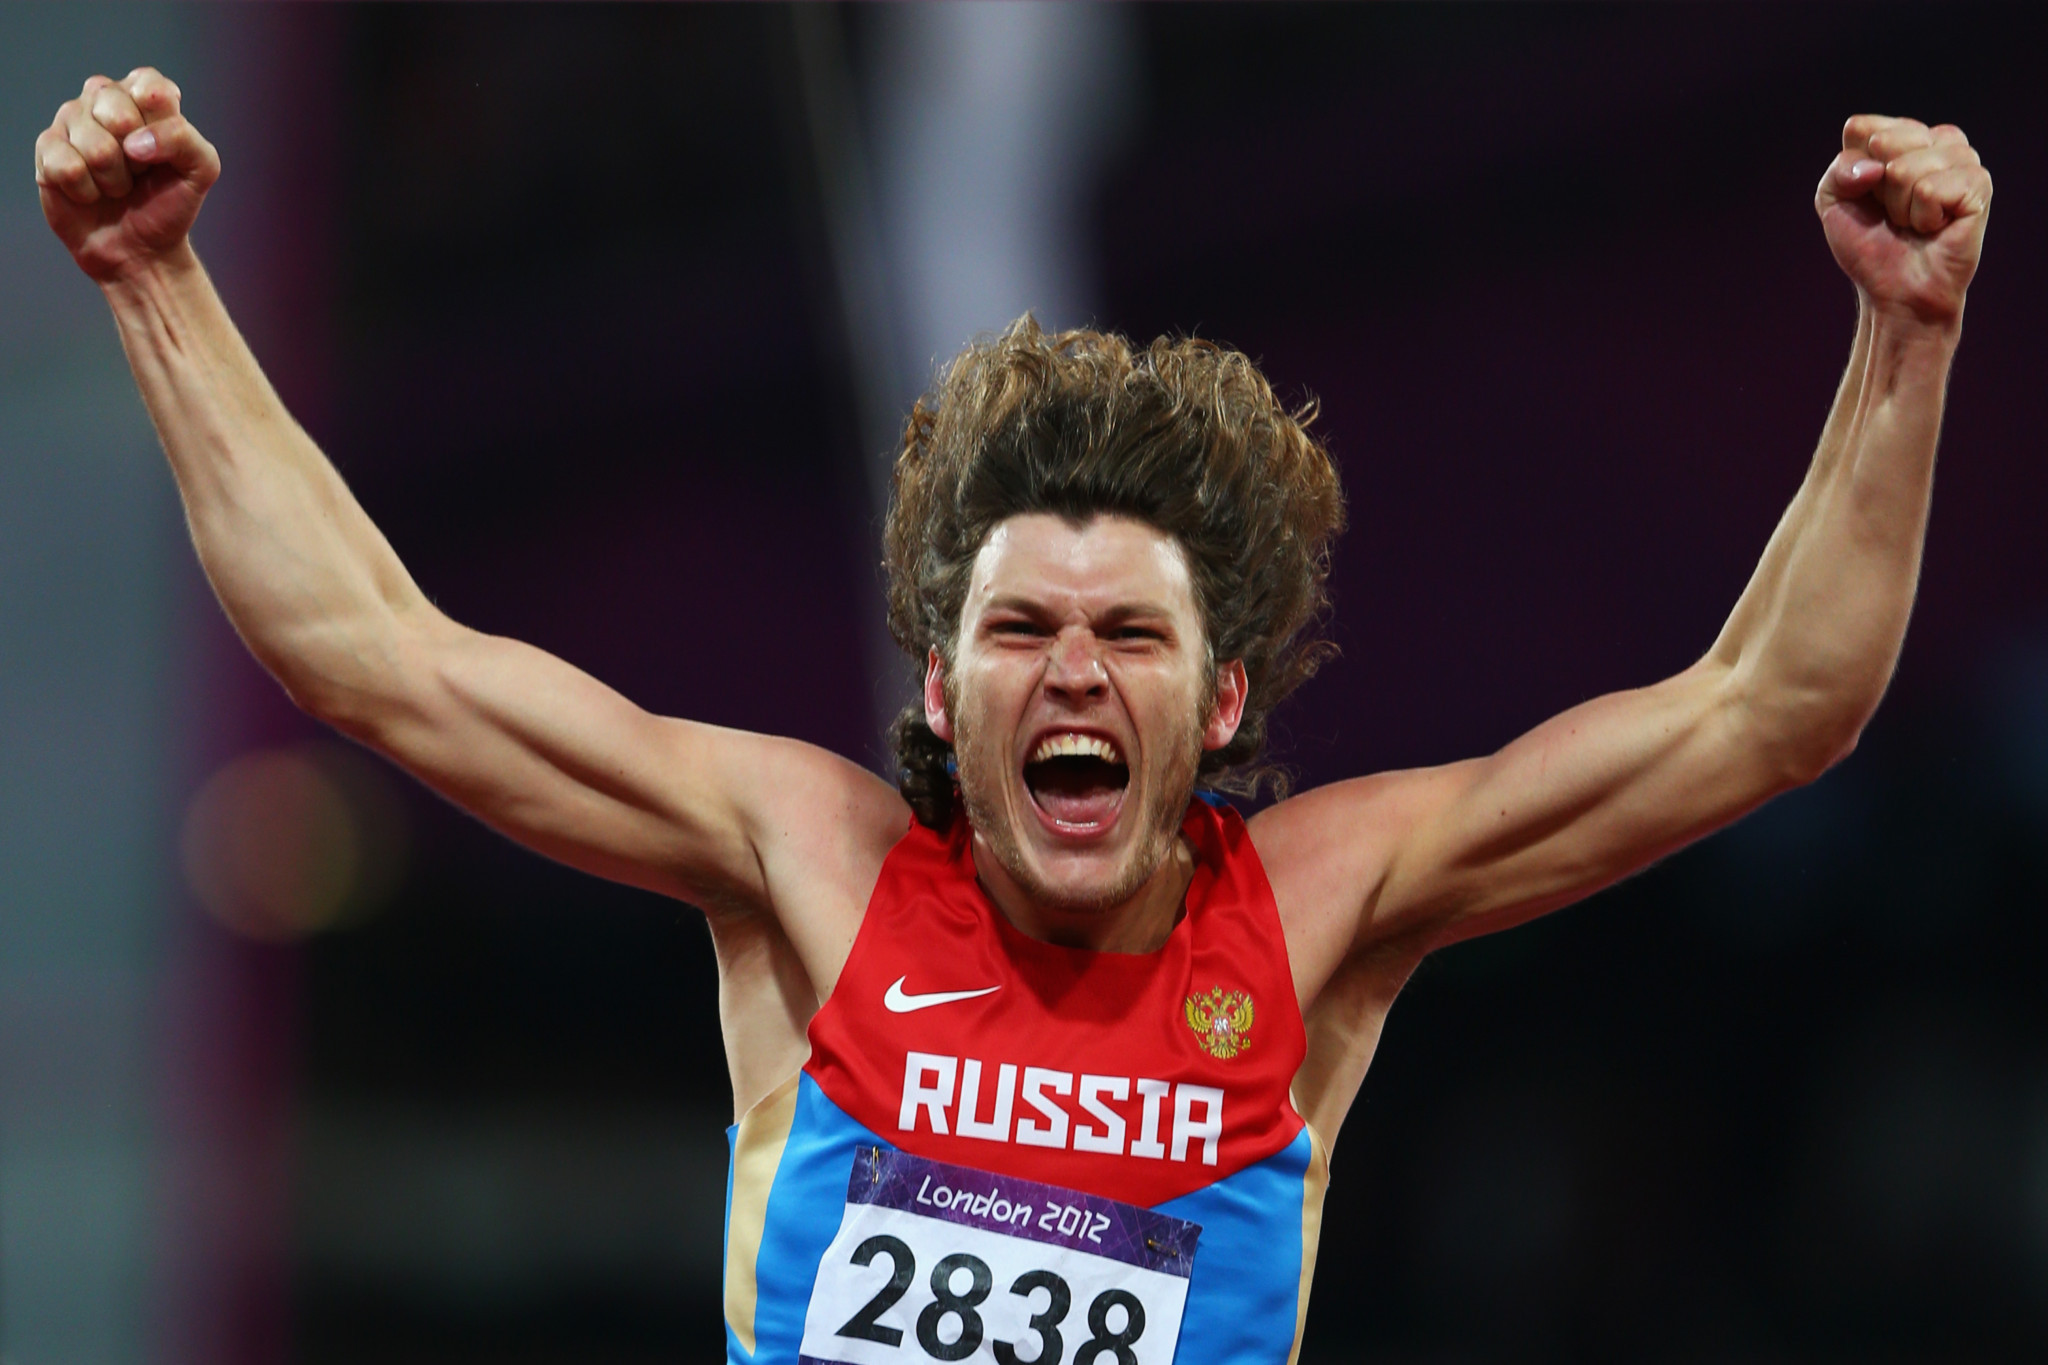 Ivan Ukhov's appeal against a four-year doping ban was only partially upheld, meaning his first-place finish at London 2012 remains disqualified  ©Getty Images